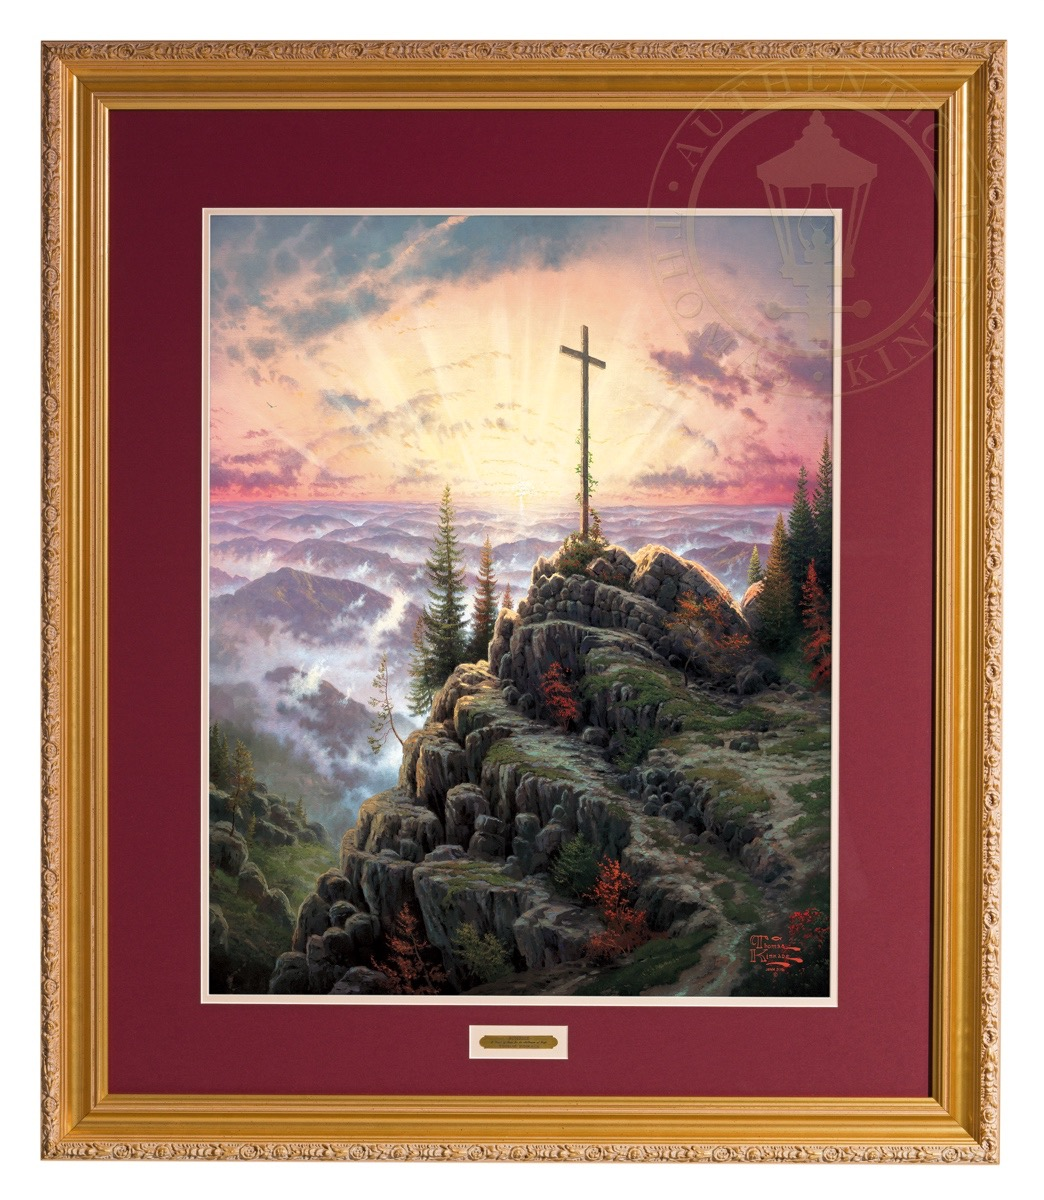 Sunrise 30 X 24 Sn Limited Edition Framed Print Carmella Frame